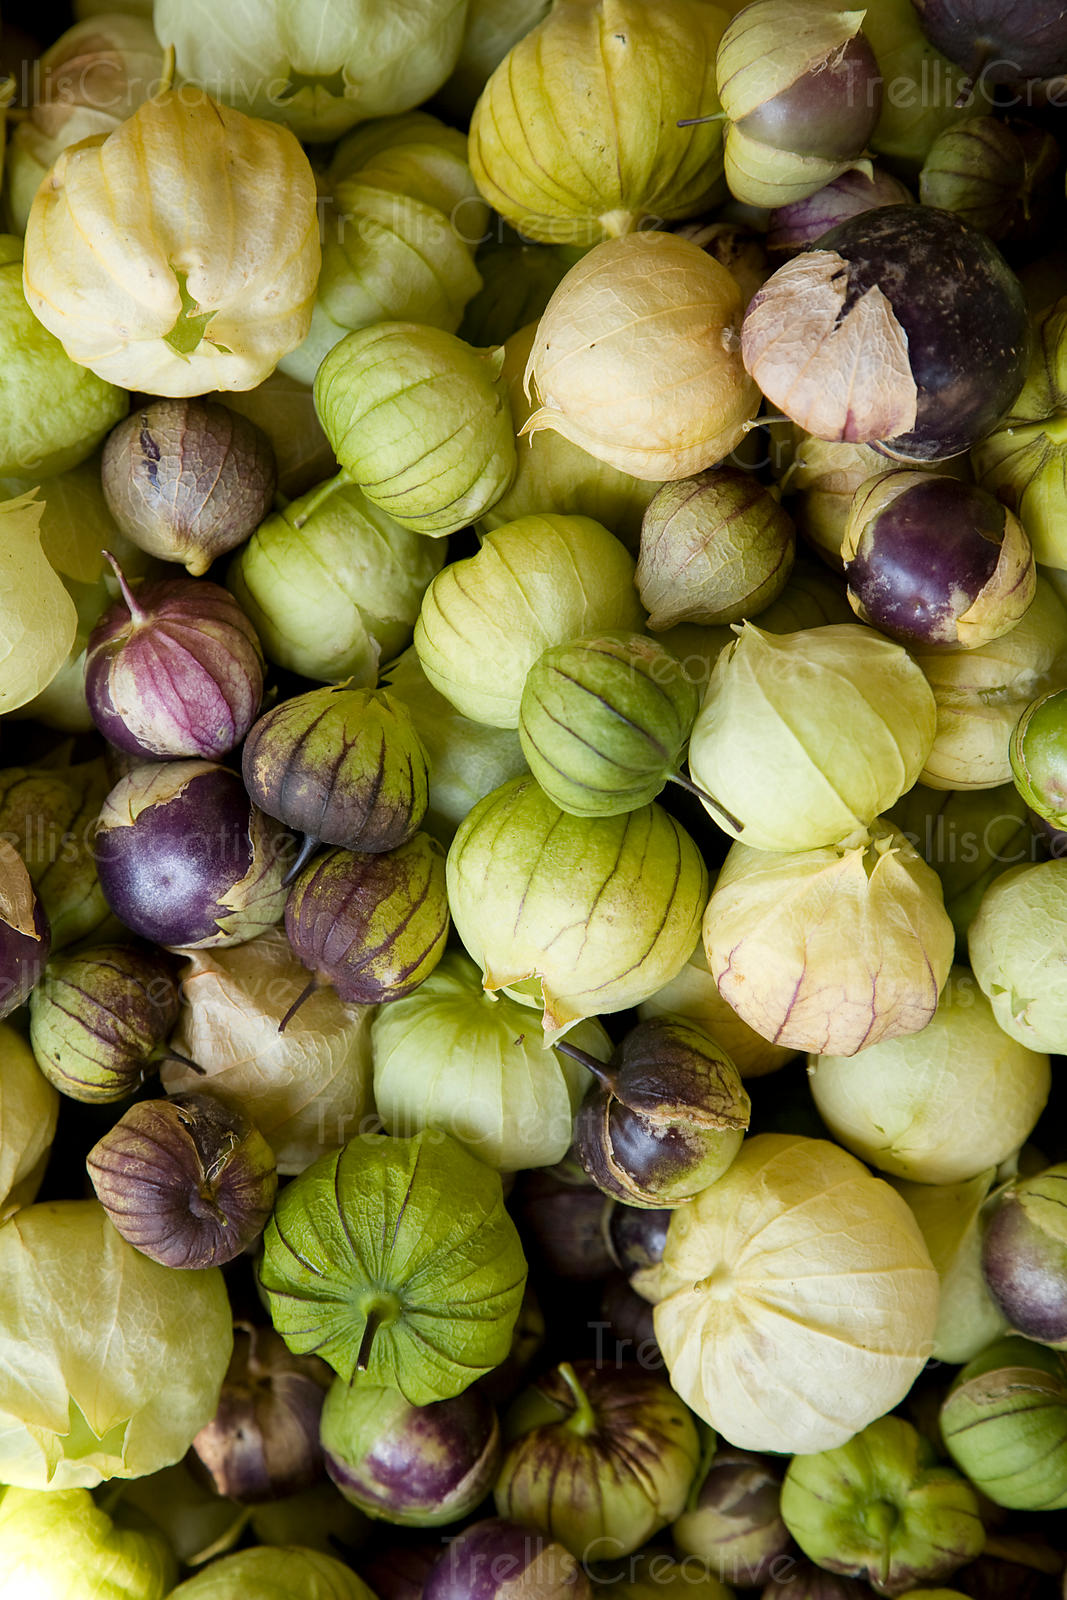 Green and purple tomatillos